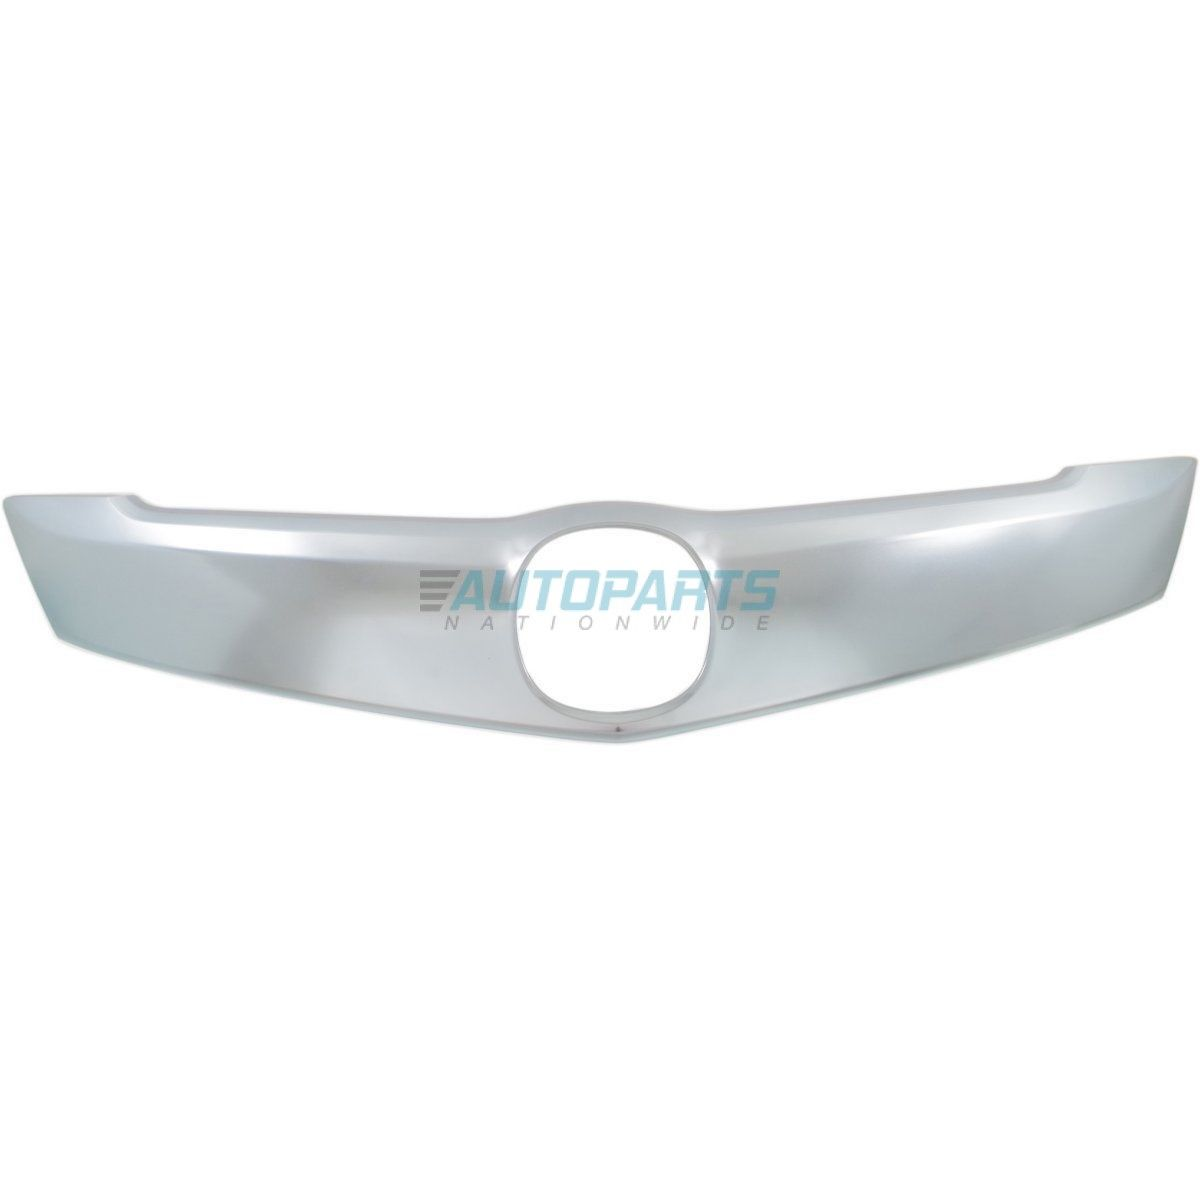 New Front Upper Grille Molding Fits 2015-2017 Acura Tlx